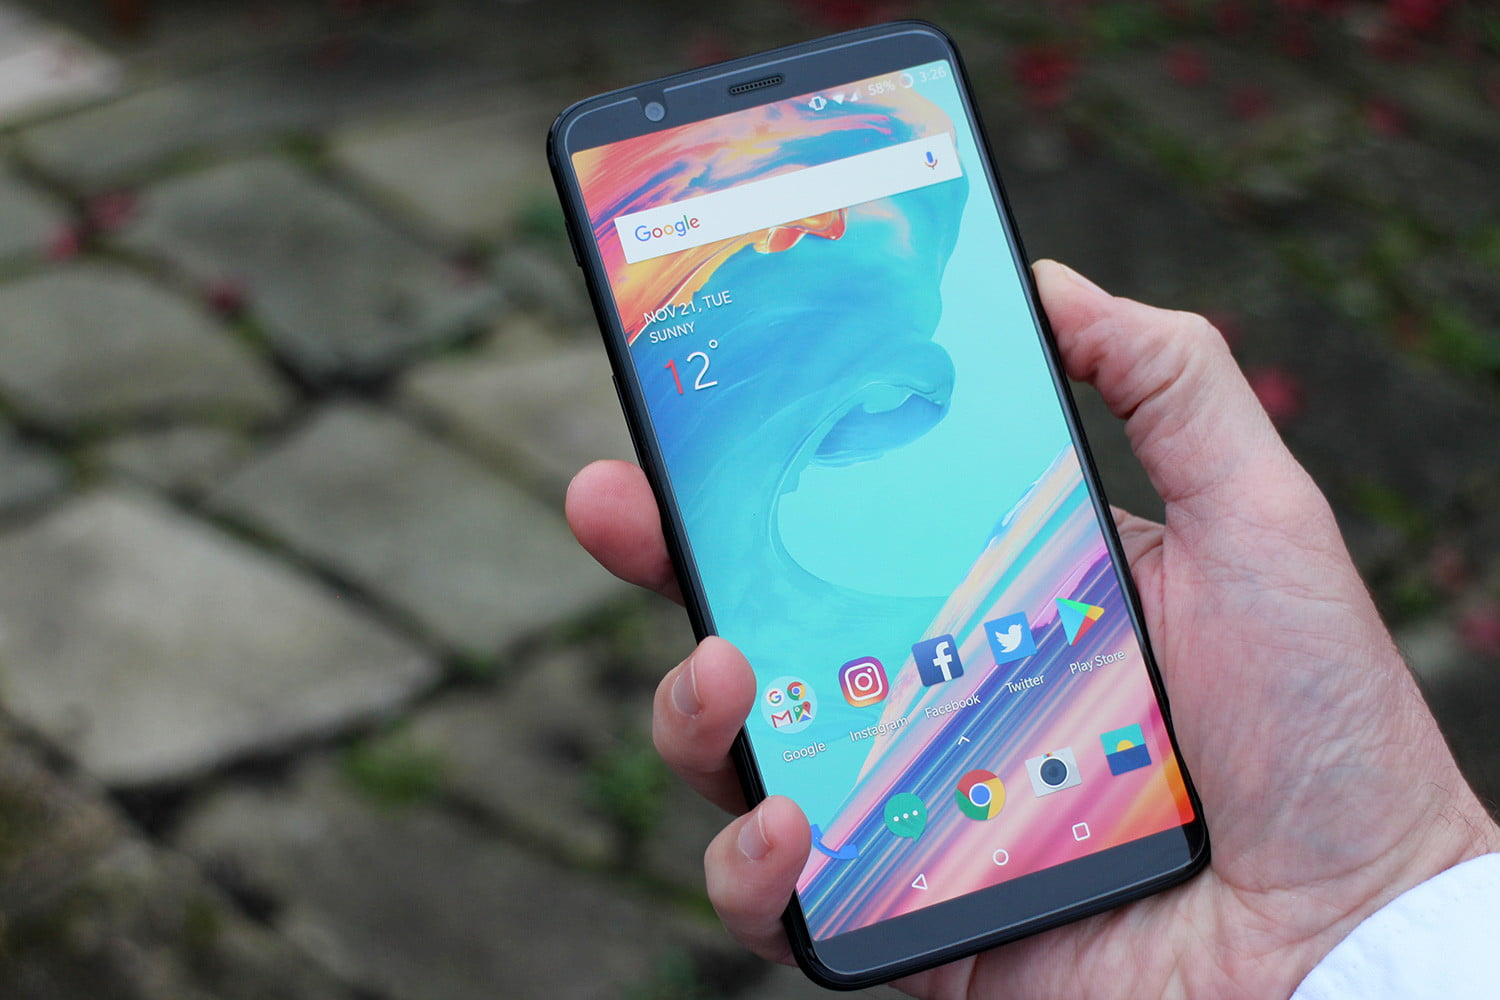 965e7a01a The Fastest Cell Phone You Can Buy in 2018